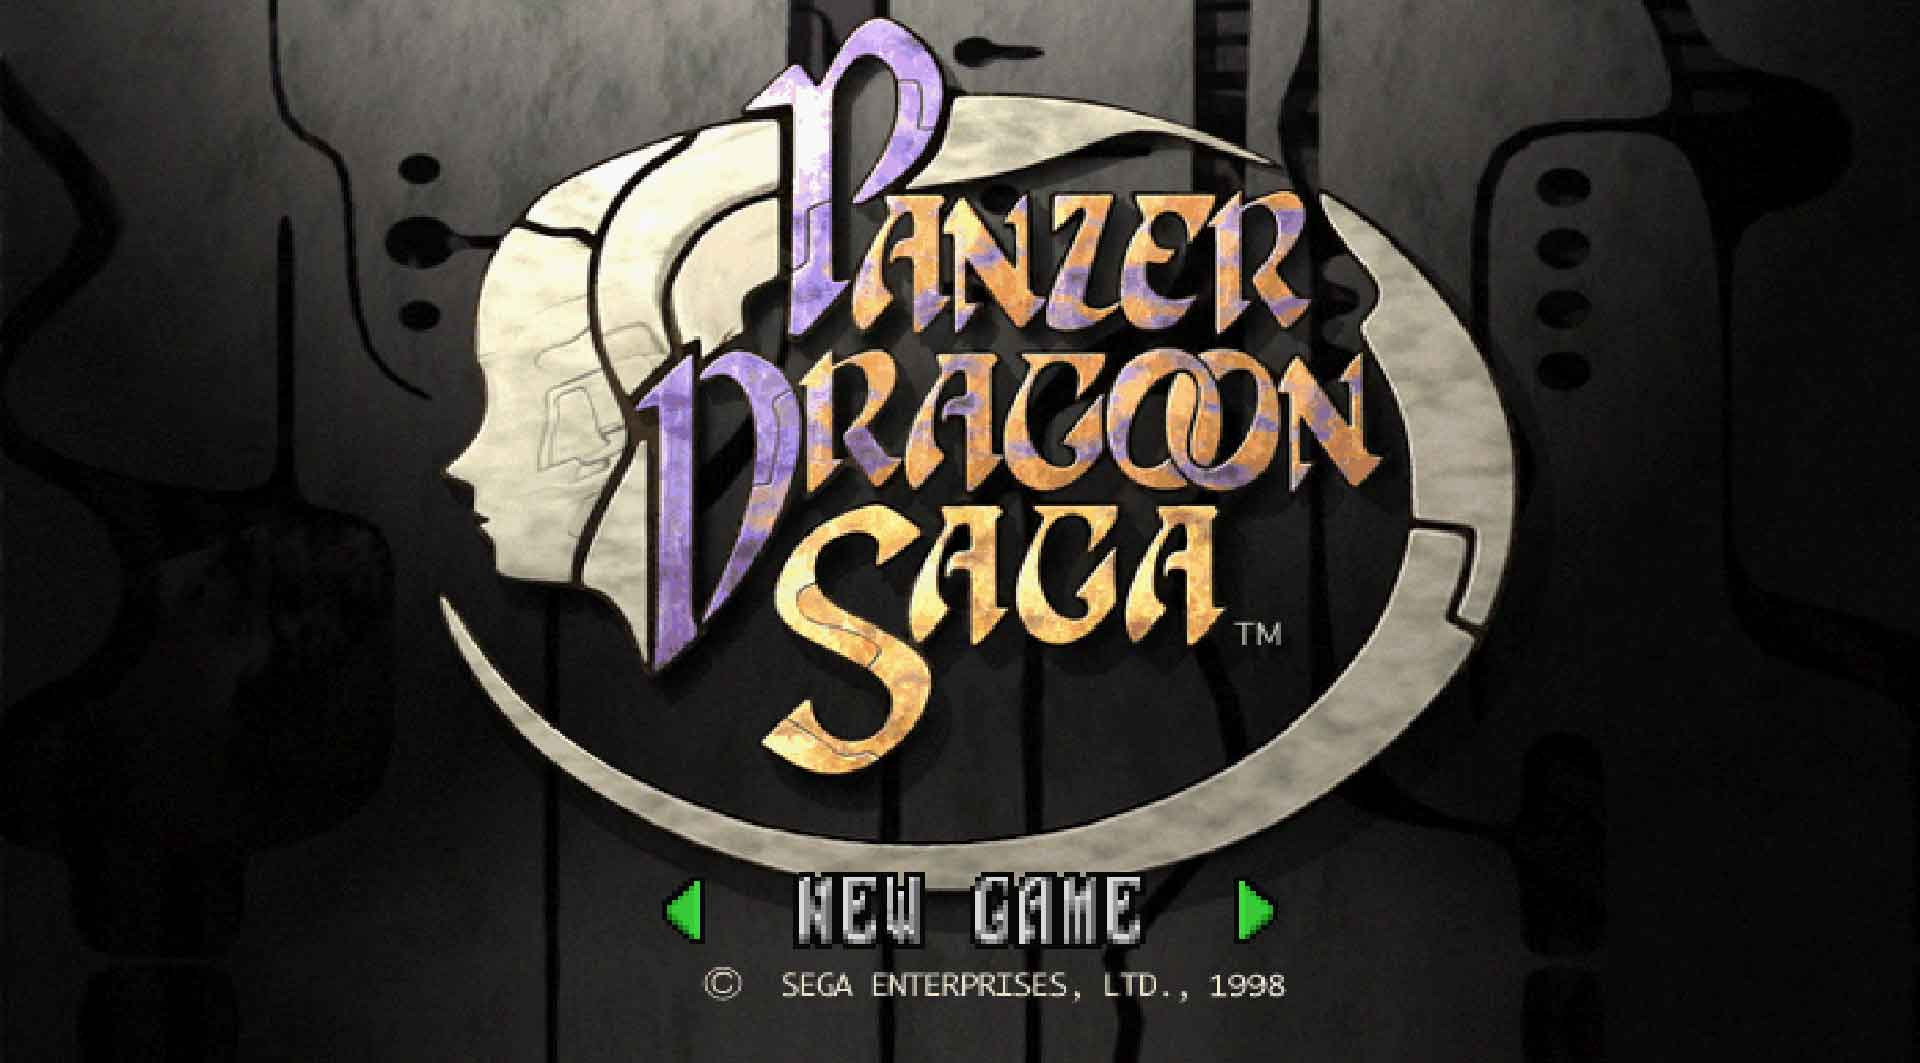 The title screen of Panzer Dragoon Saga.